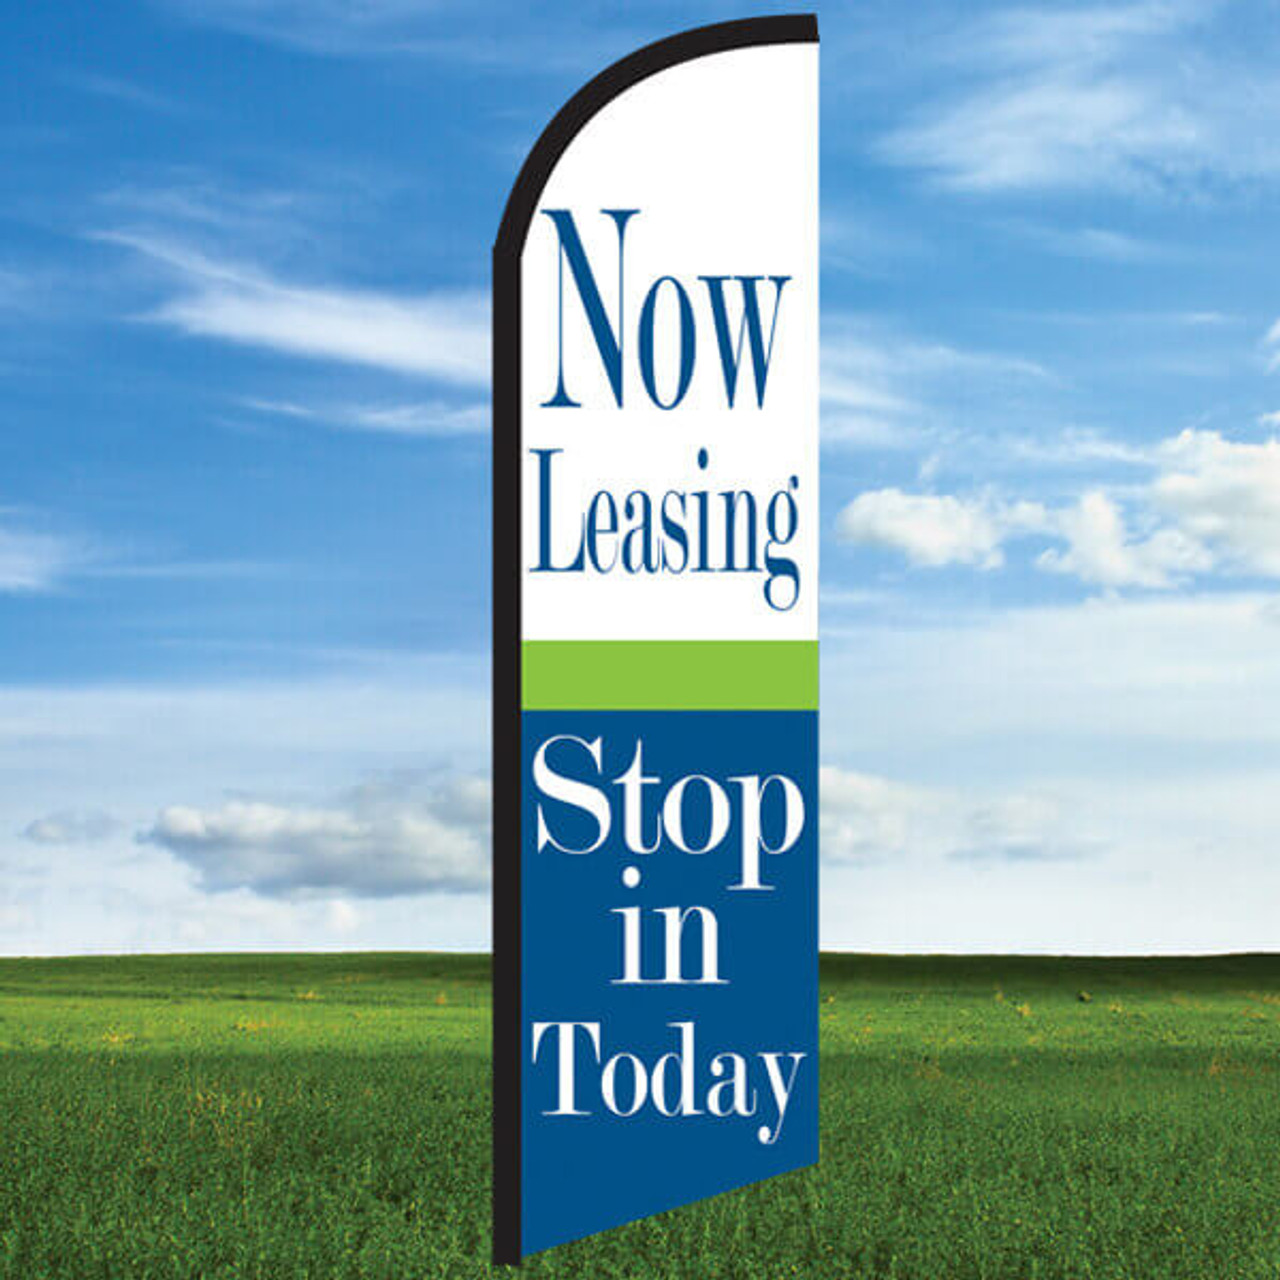 Widebody Flag : Cheerful Now Leasing/Stop In Today